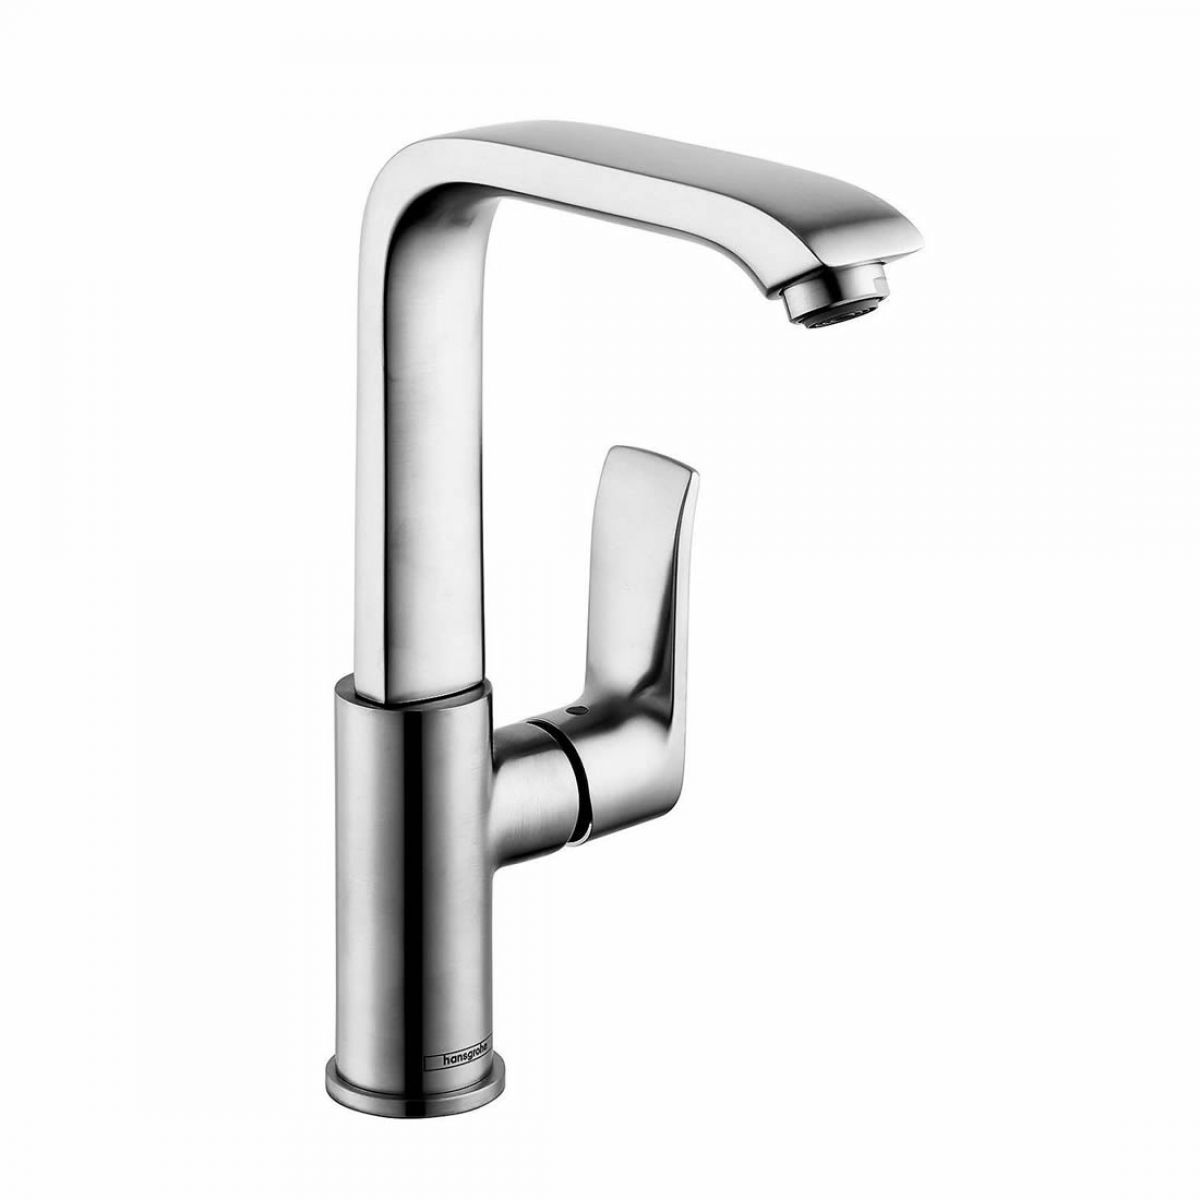 hansgrohe metris 230 side lever basin mixer tap uk bathrooms. Black Bedroom Furniture Sets. Home Design Ideas